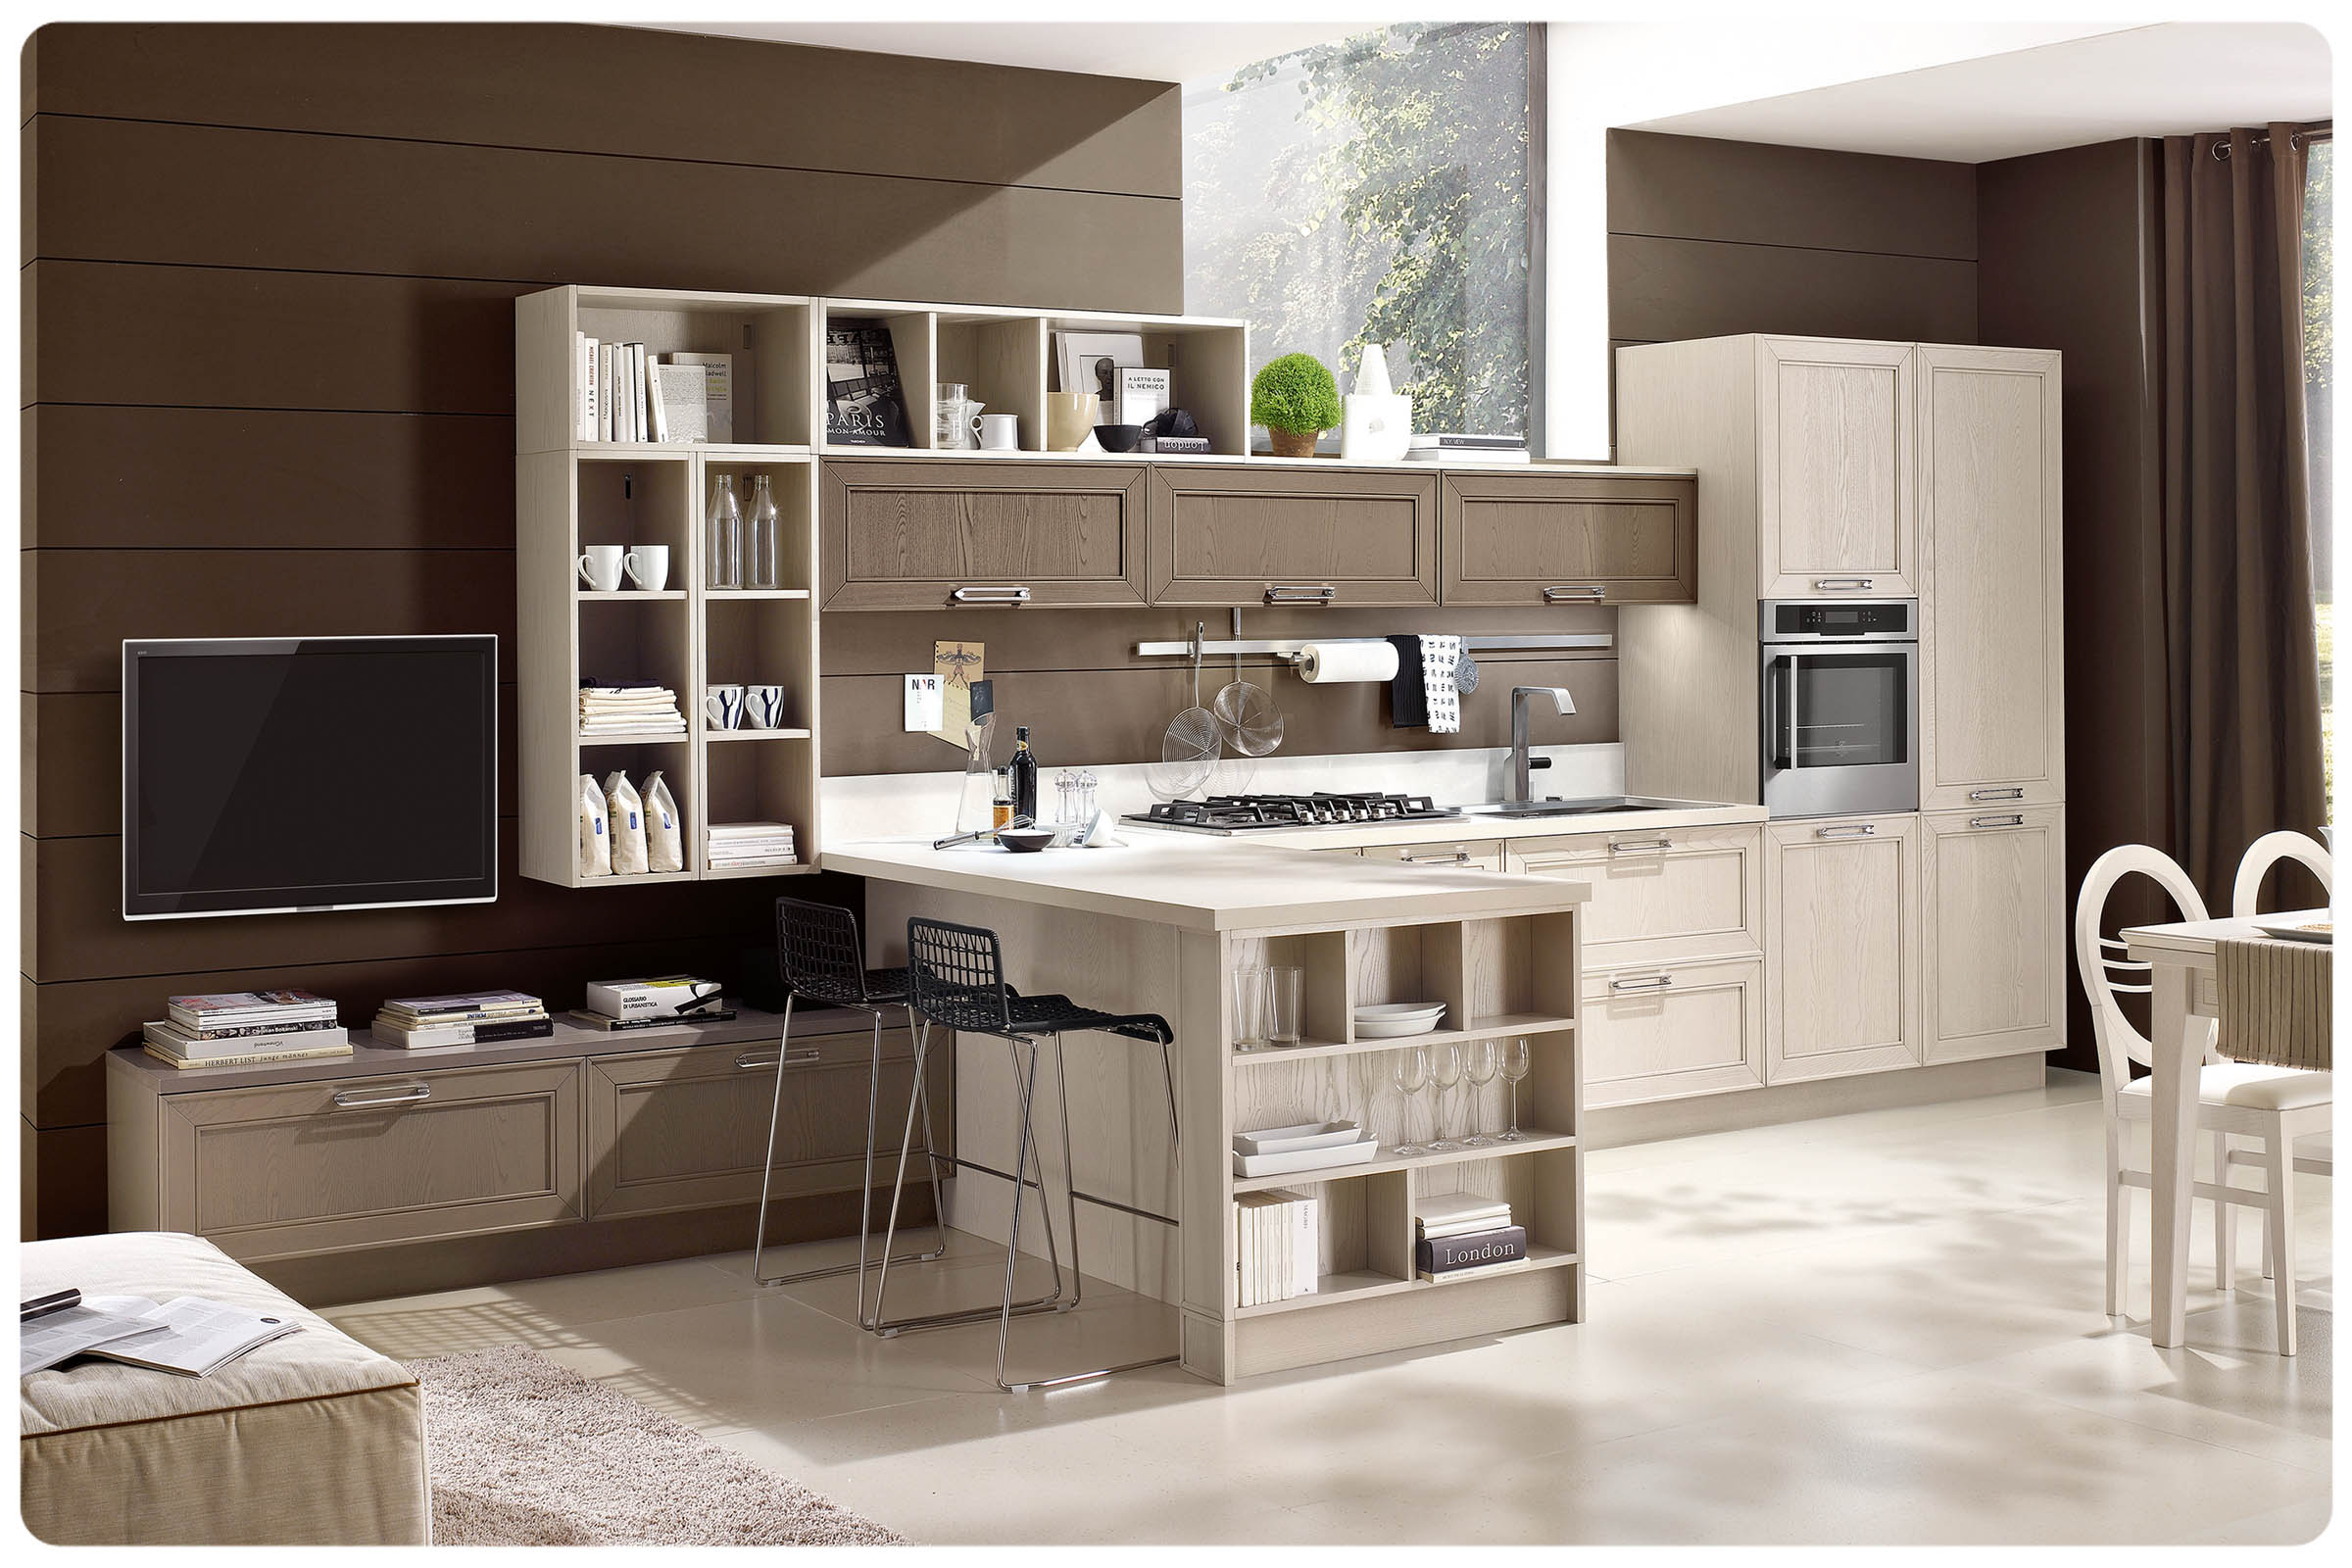 Outlet cucine componibili cool outlet cucine componibili for Cucine on line outlet